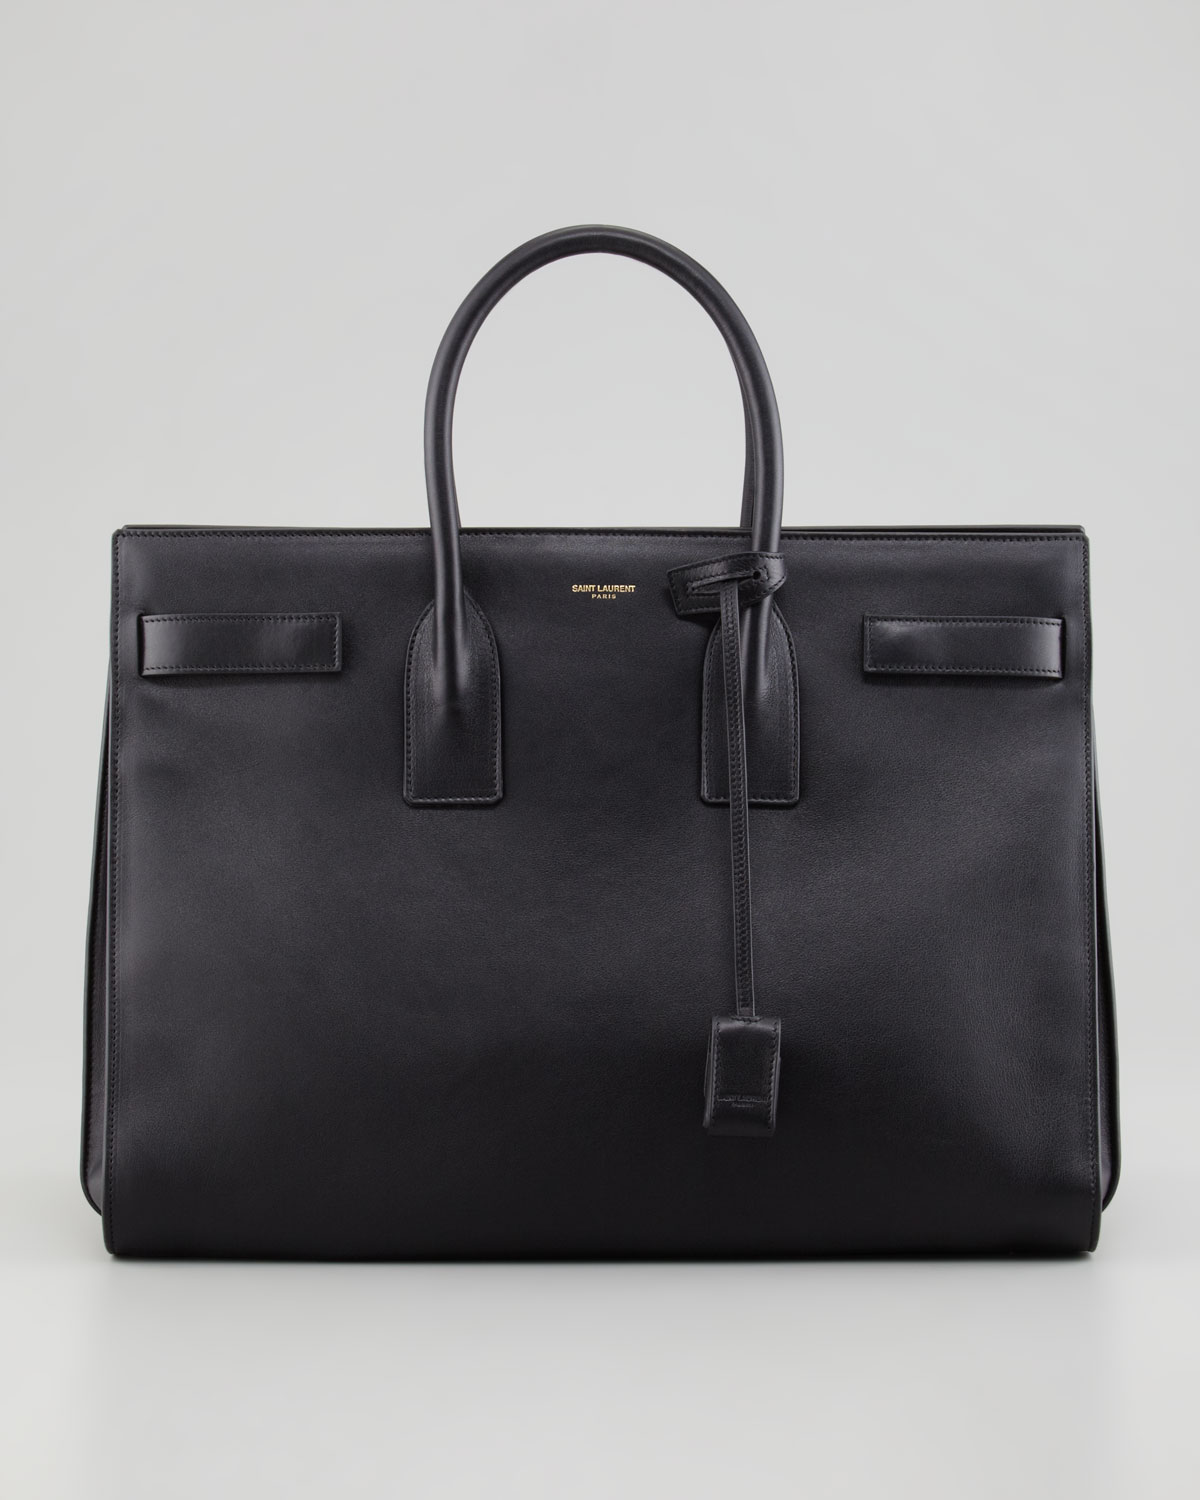 saint laurent classic sac de jour leather tote bag black in black lyst. Black Bedroom Furniture Sets. Home Design Ideas